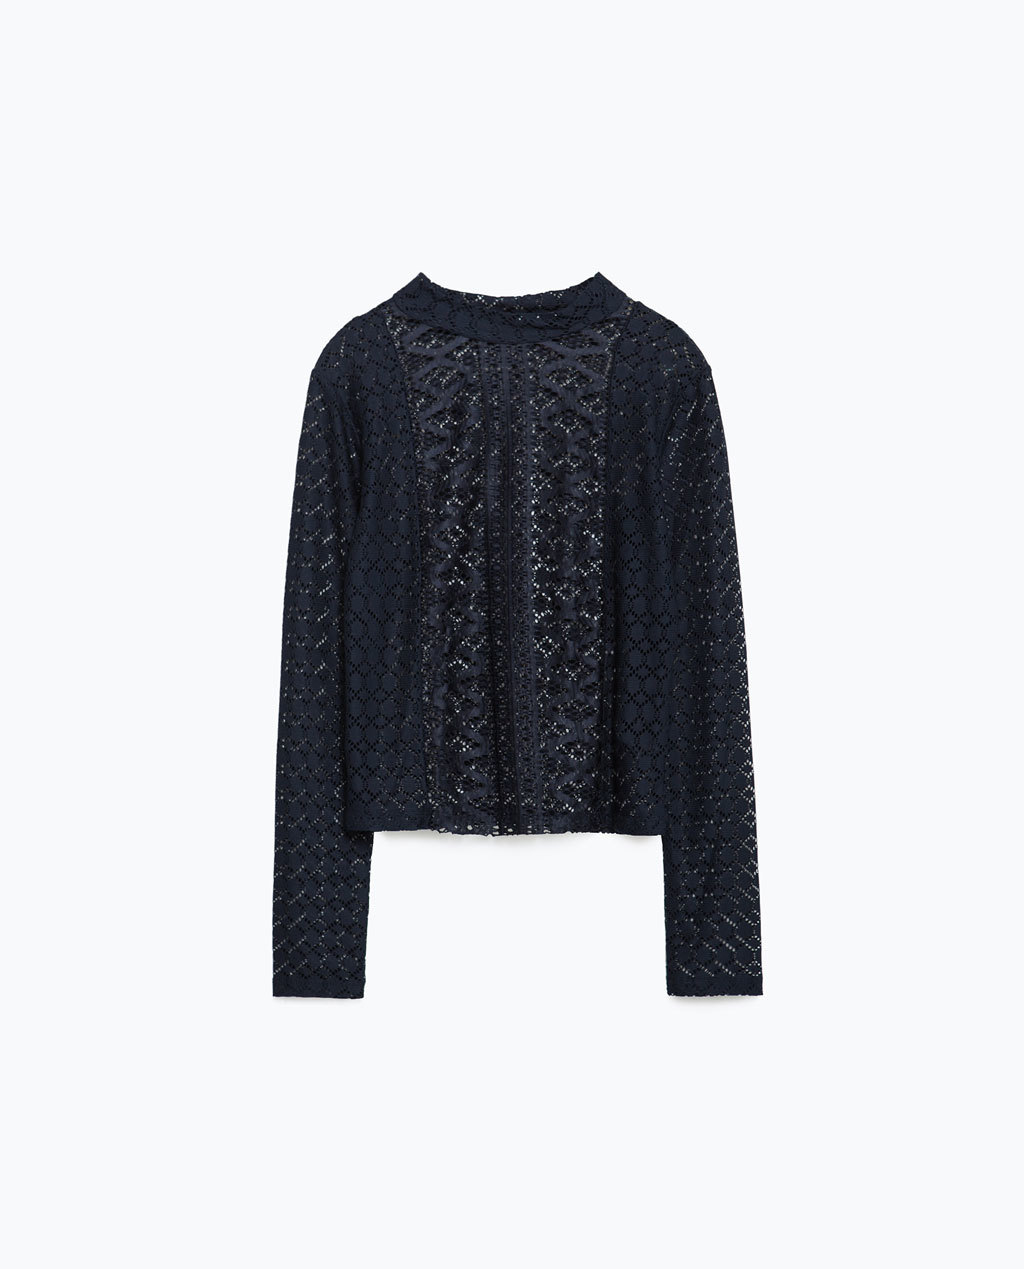 Lace T Shirt - neckline: high neck; predominant colour: navy; occasions: casual, creative work; length: standard; style: top; fibres: polyester/polyamide - 100%; fit: straight cut; sleeve length: long sleeve; sleeve style: standard; texture group: lace; pattern type: fabric; pattern size: standard; pattern: patterned/print; season: a/w 2015; wardrobe: highlight